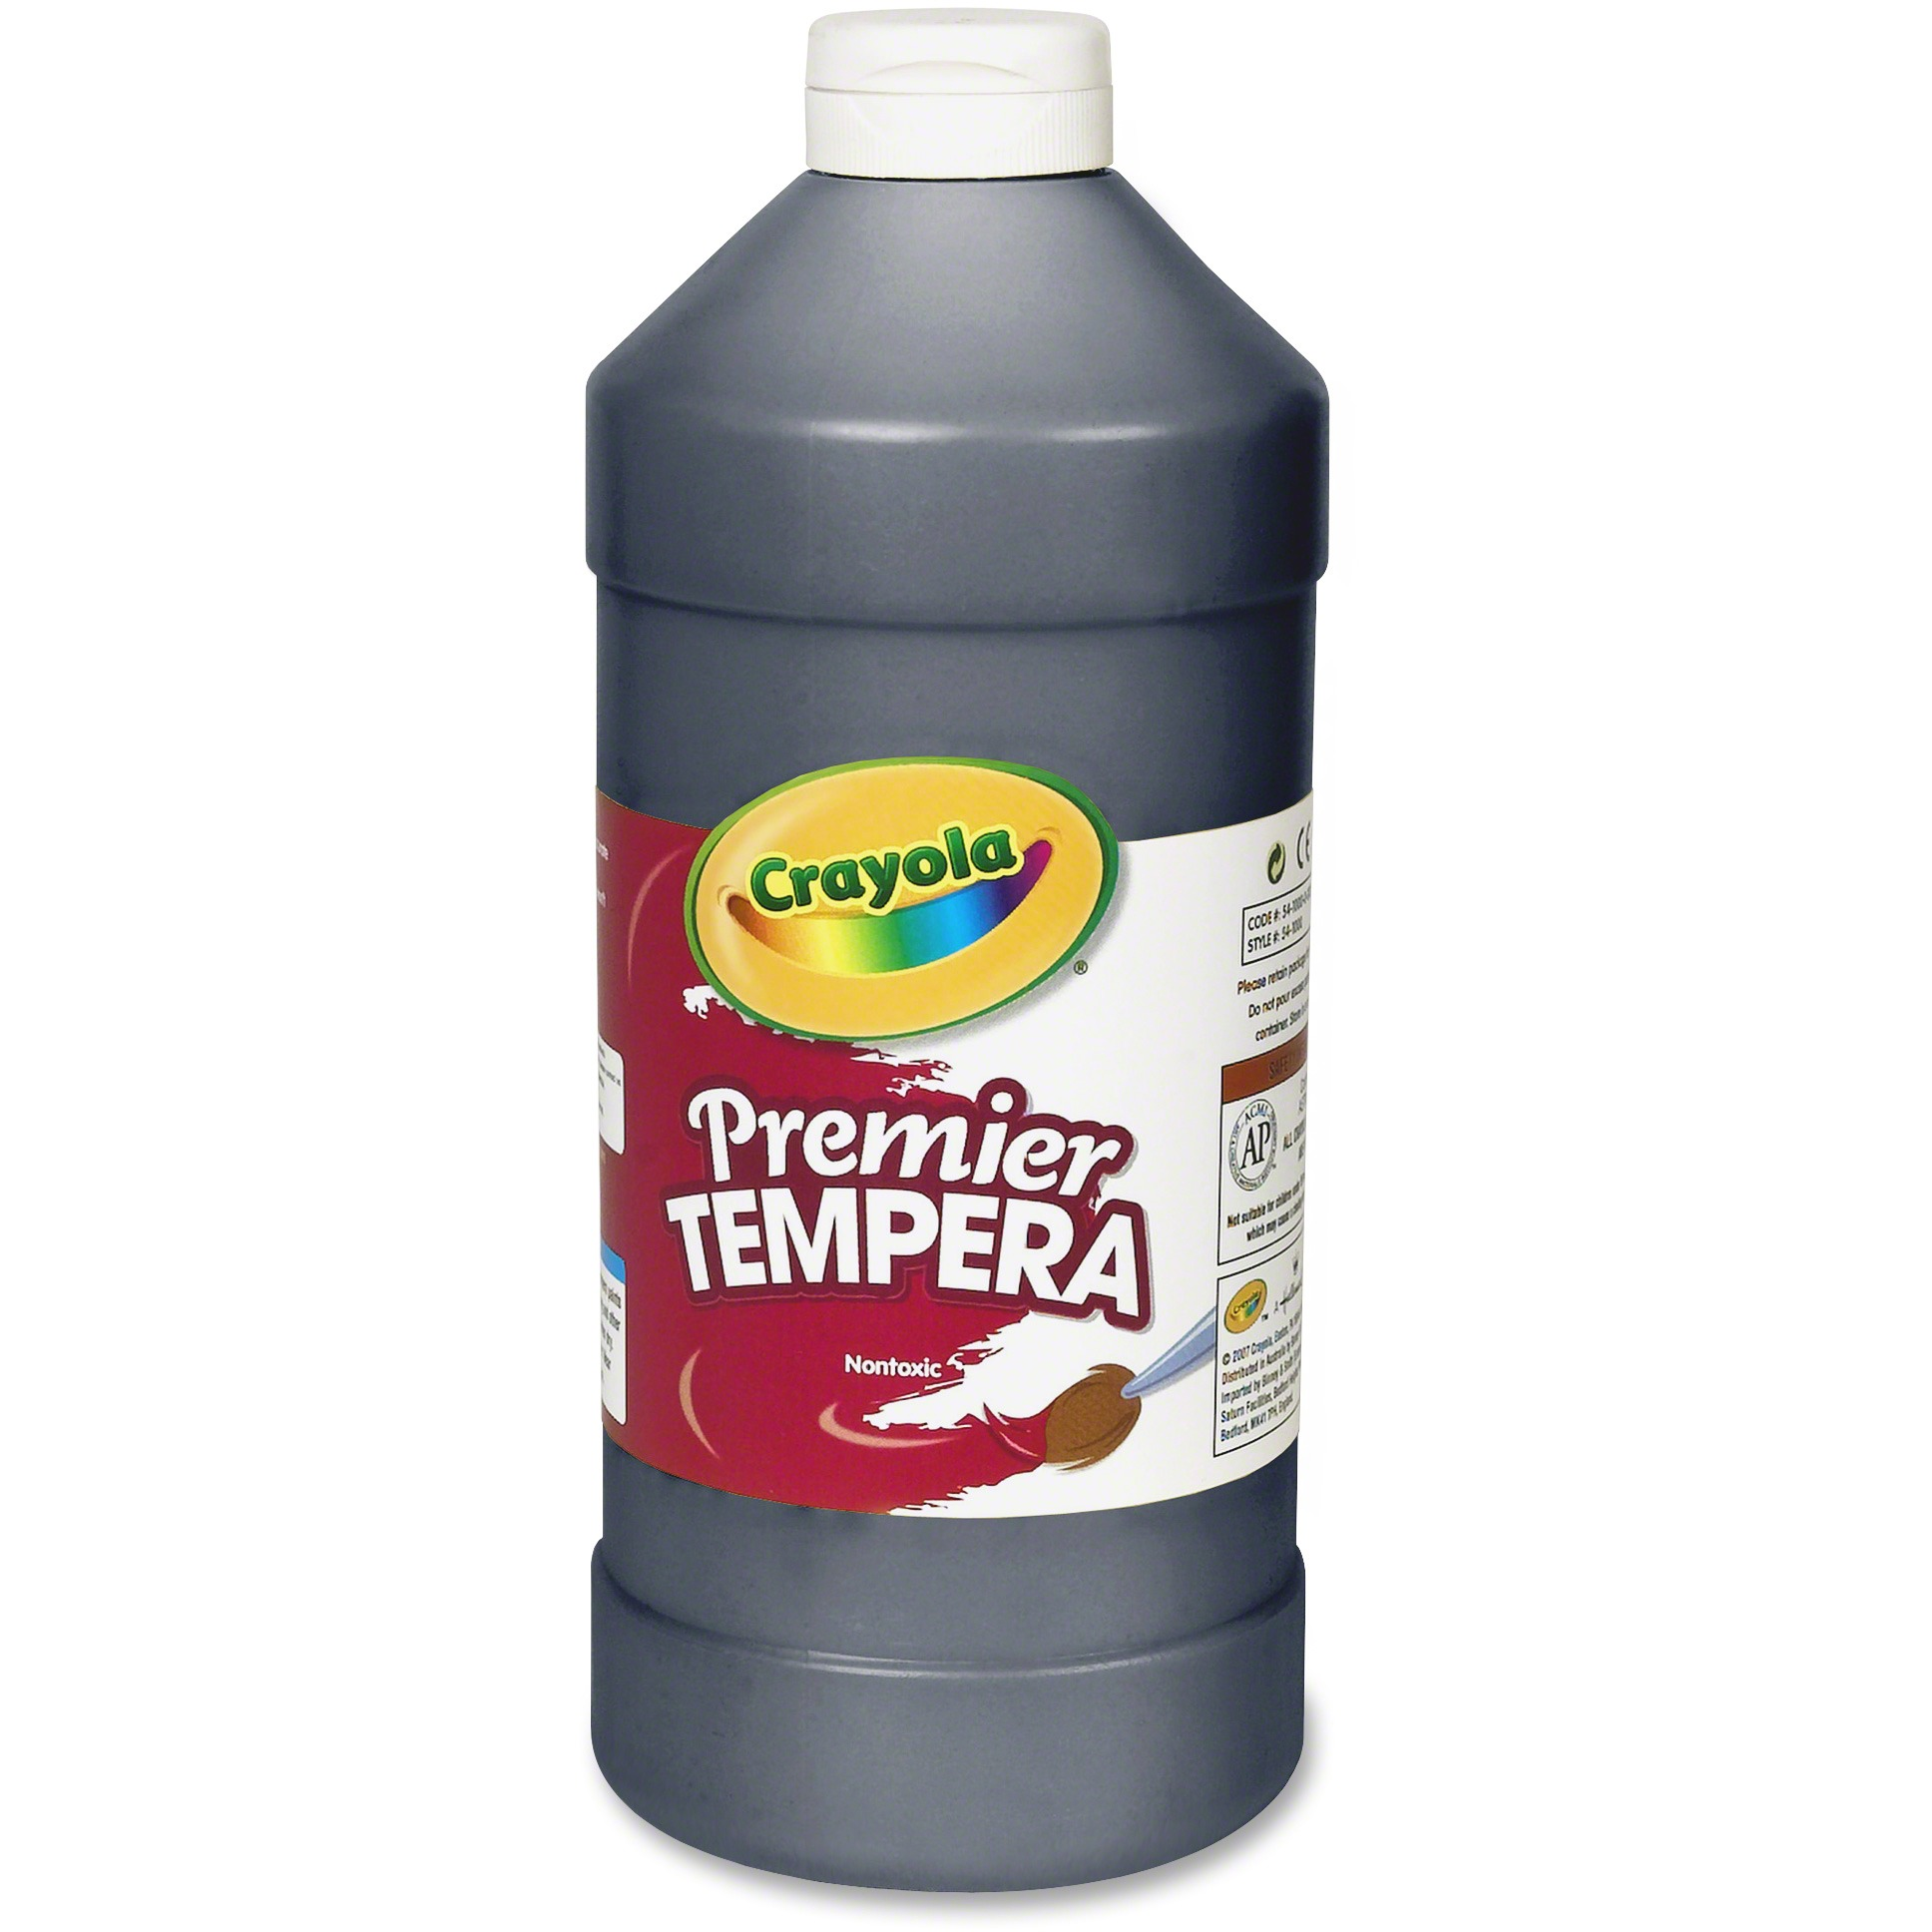 Crayola White Premier Tempera Paint, 32 ounce Squeeze Bottle